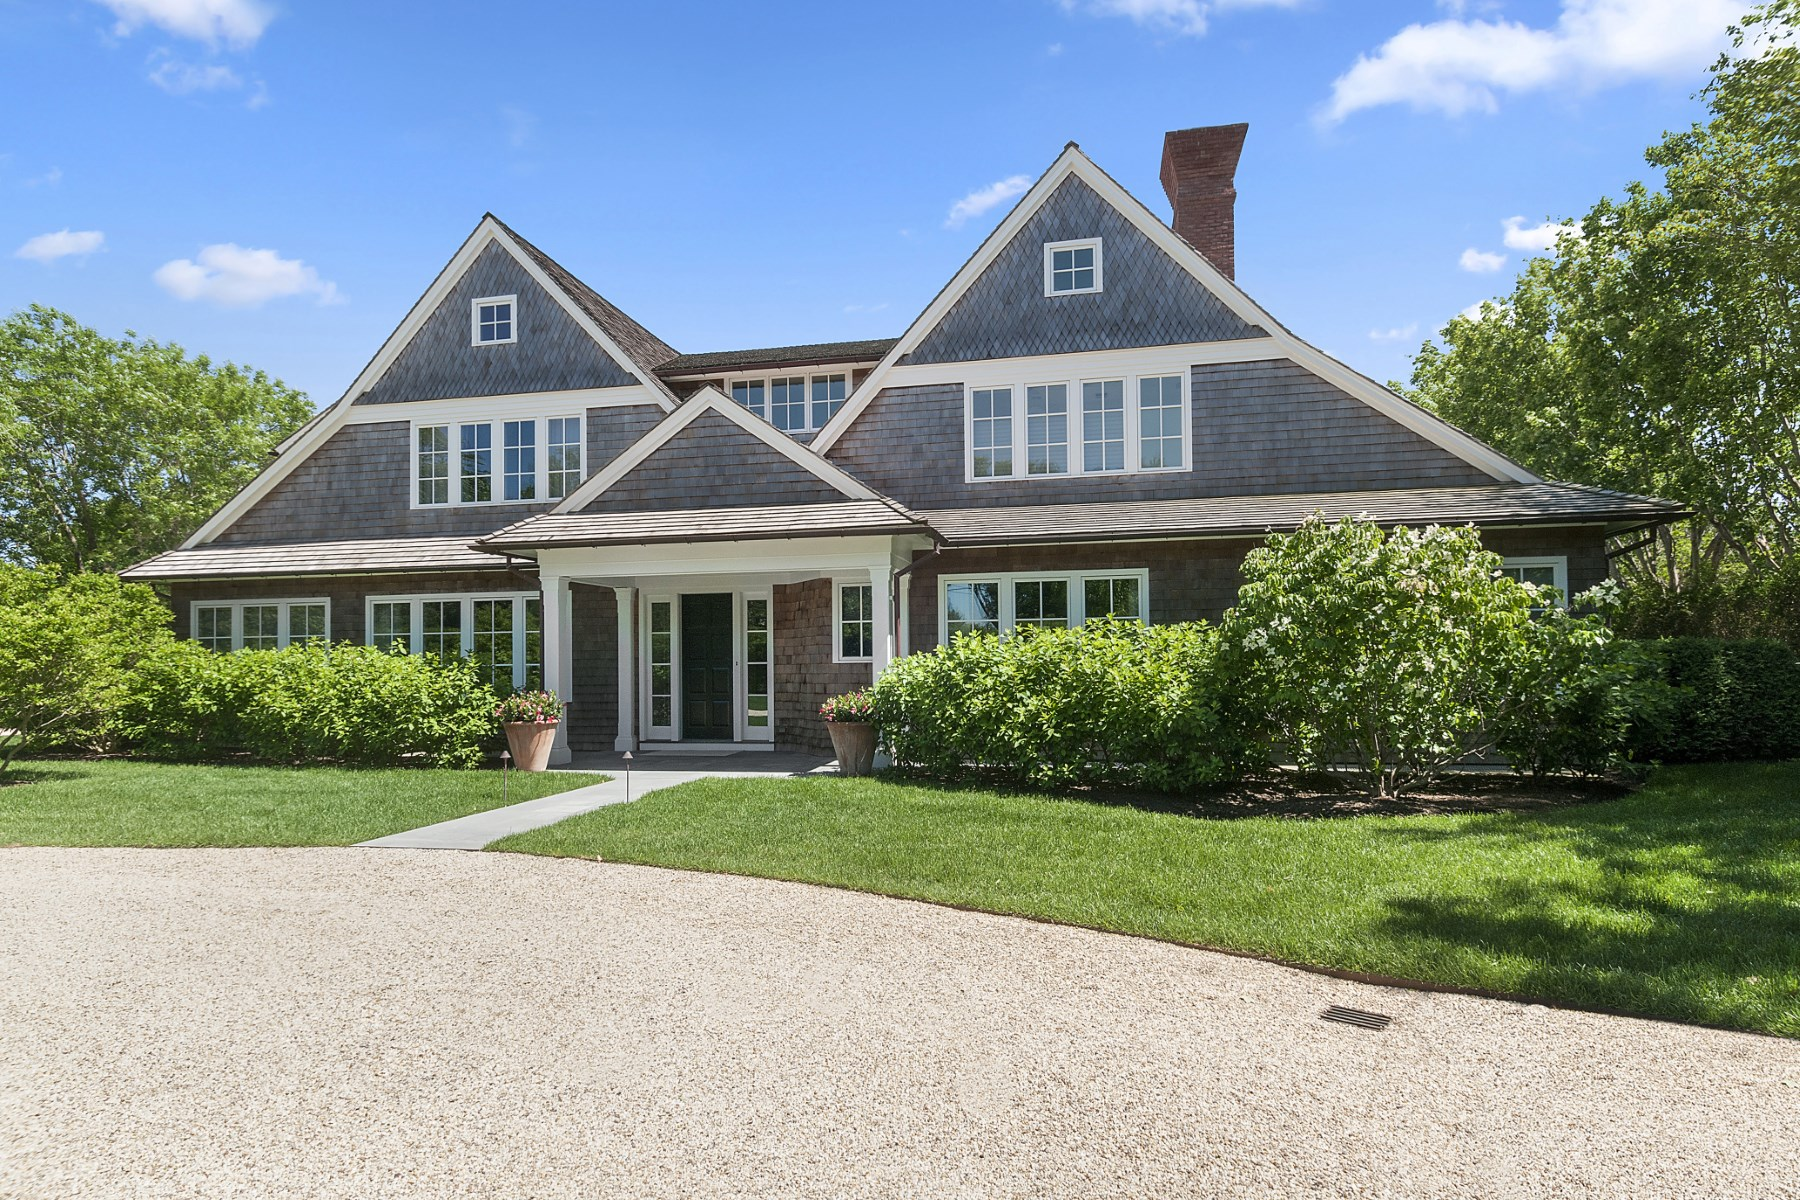 Single Family Home for Rent at New Dream Home in Sagaponack South Sagaponack, New York 11962 United States